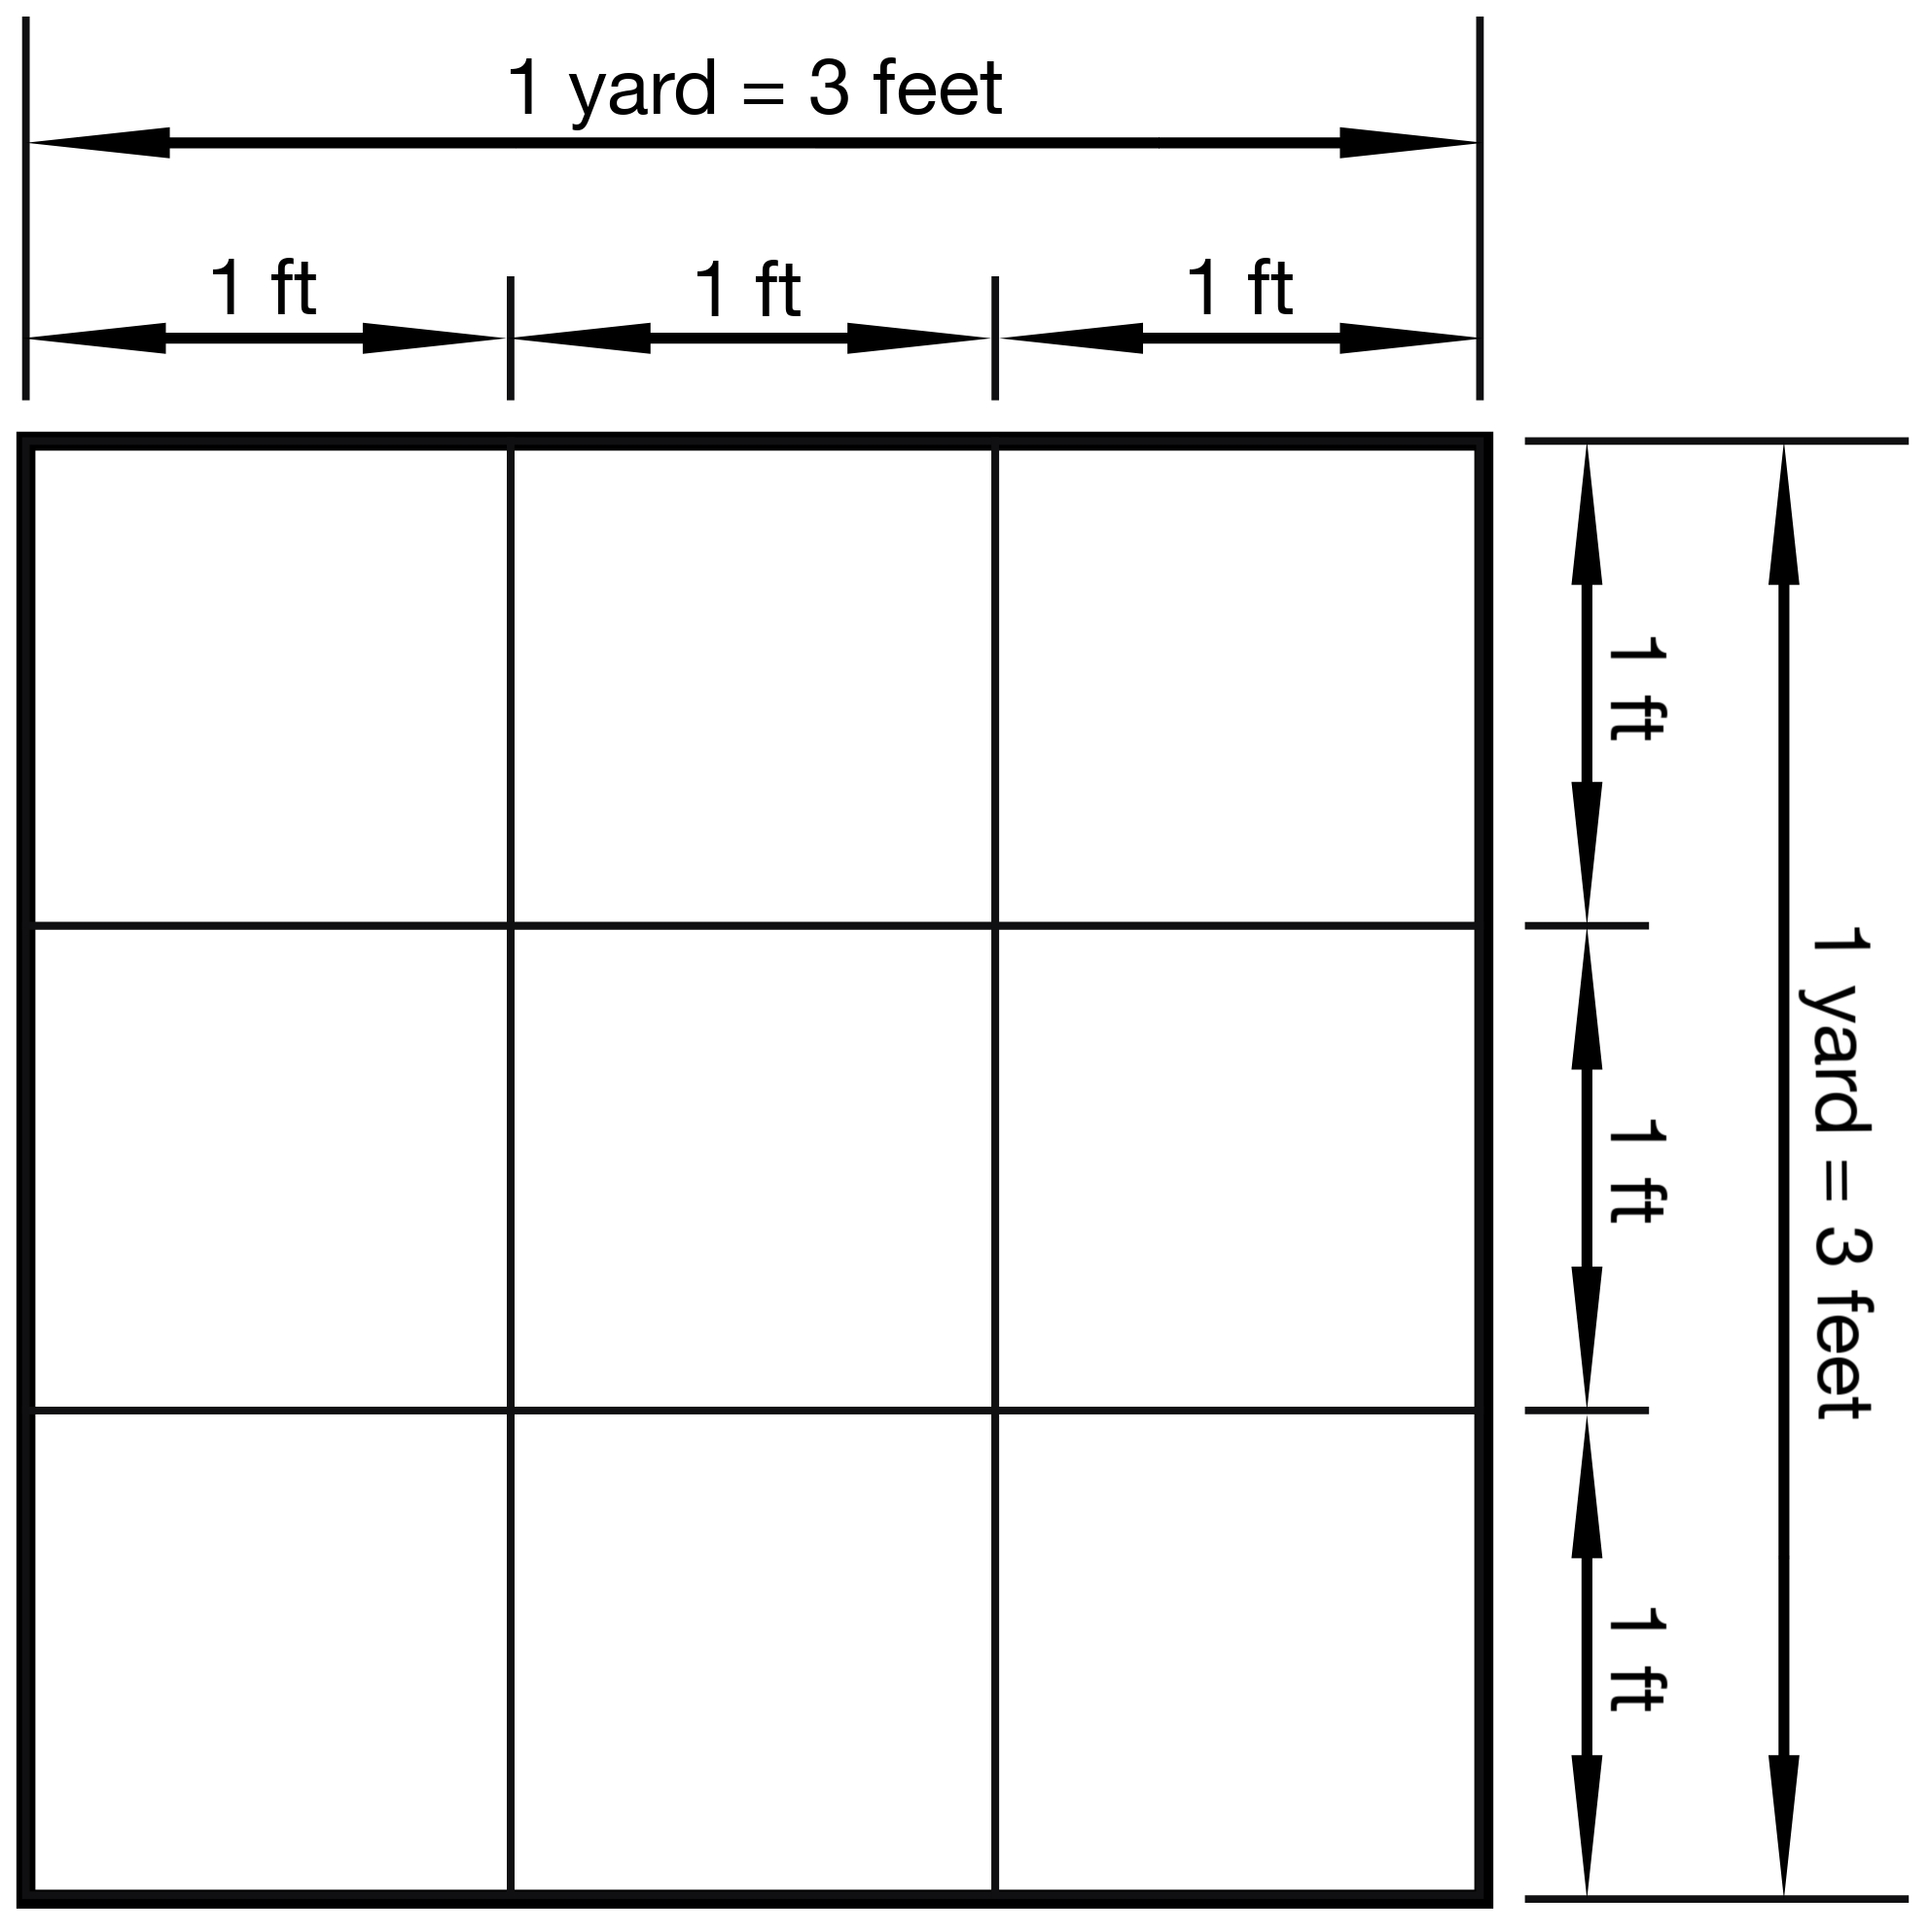 Illustration showing that 1 square yard is equal 9 square ft.